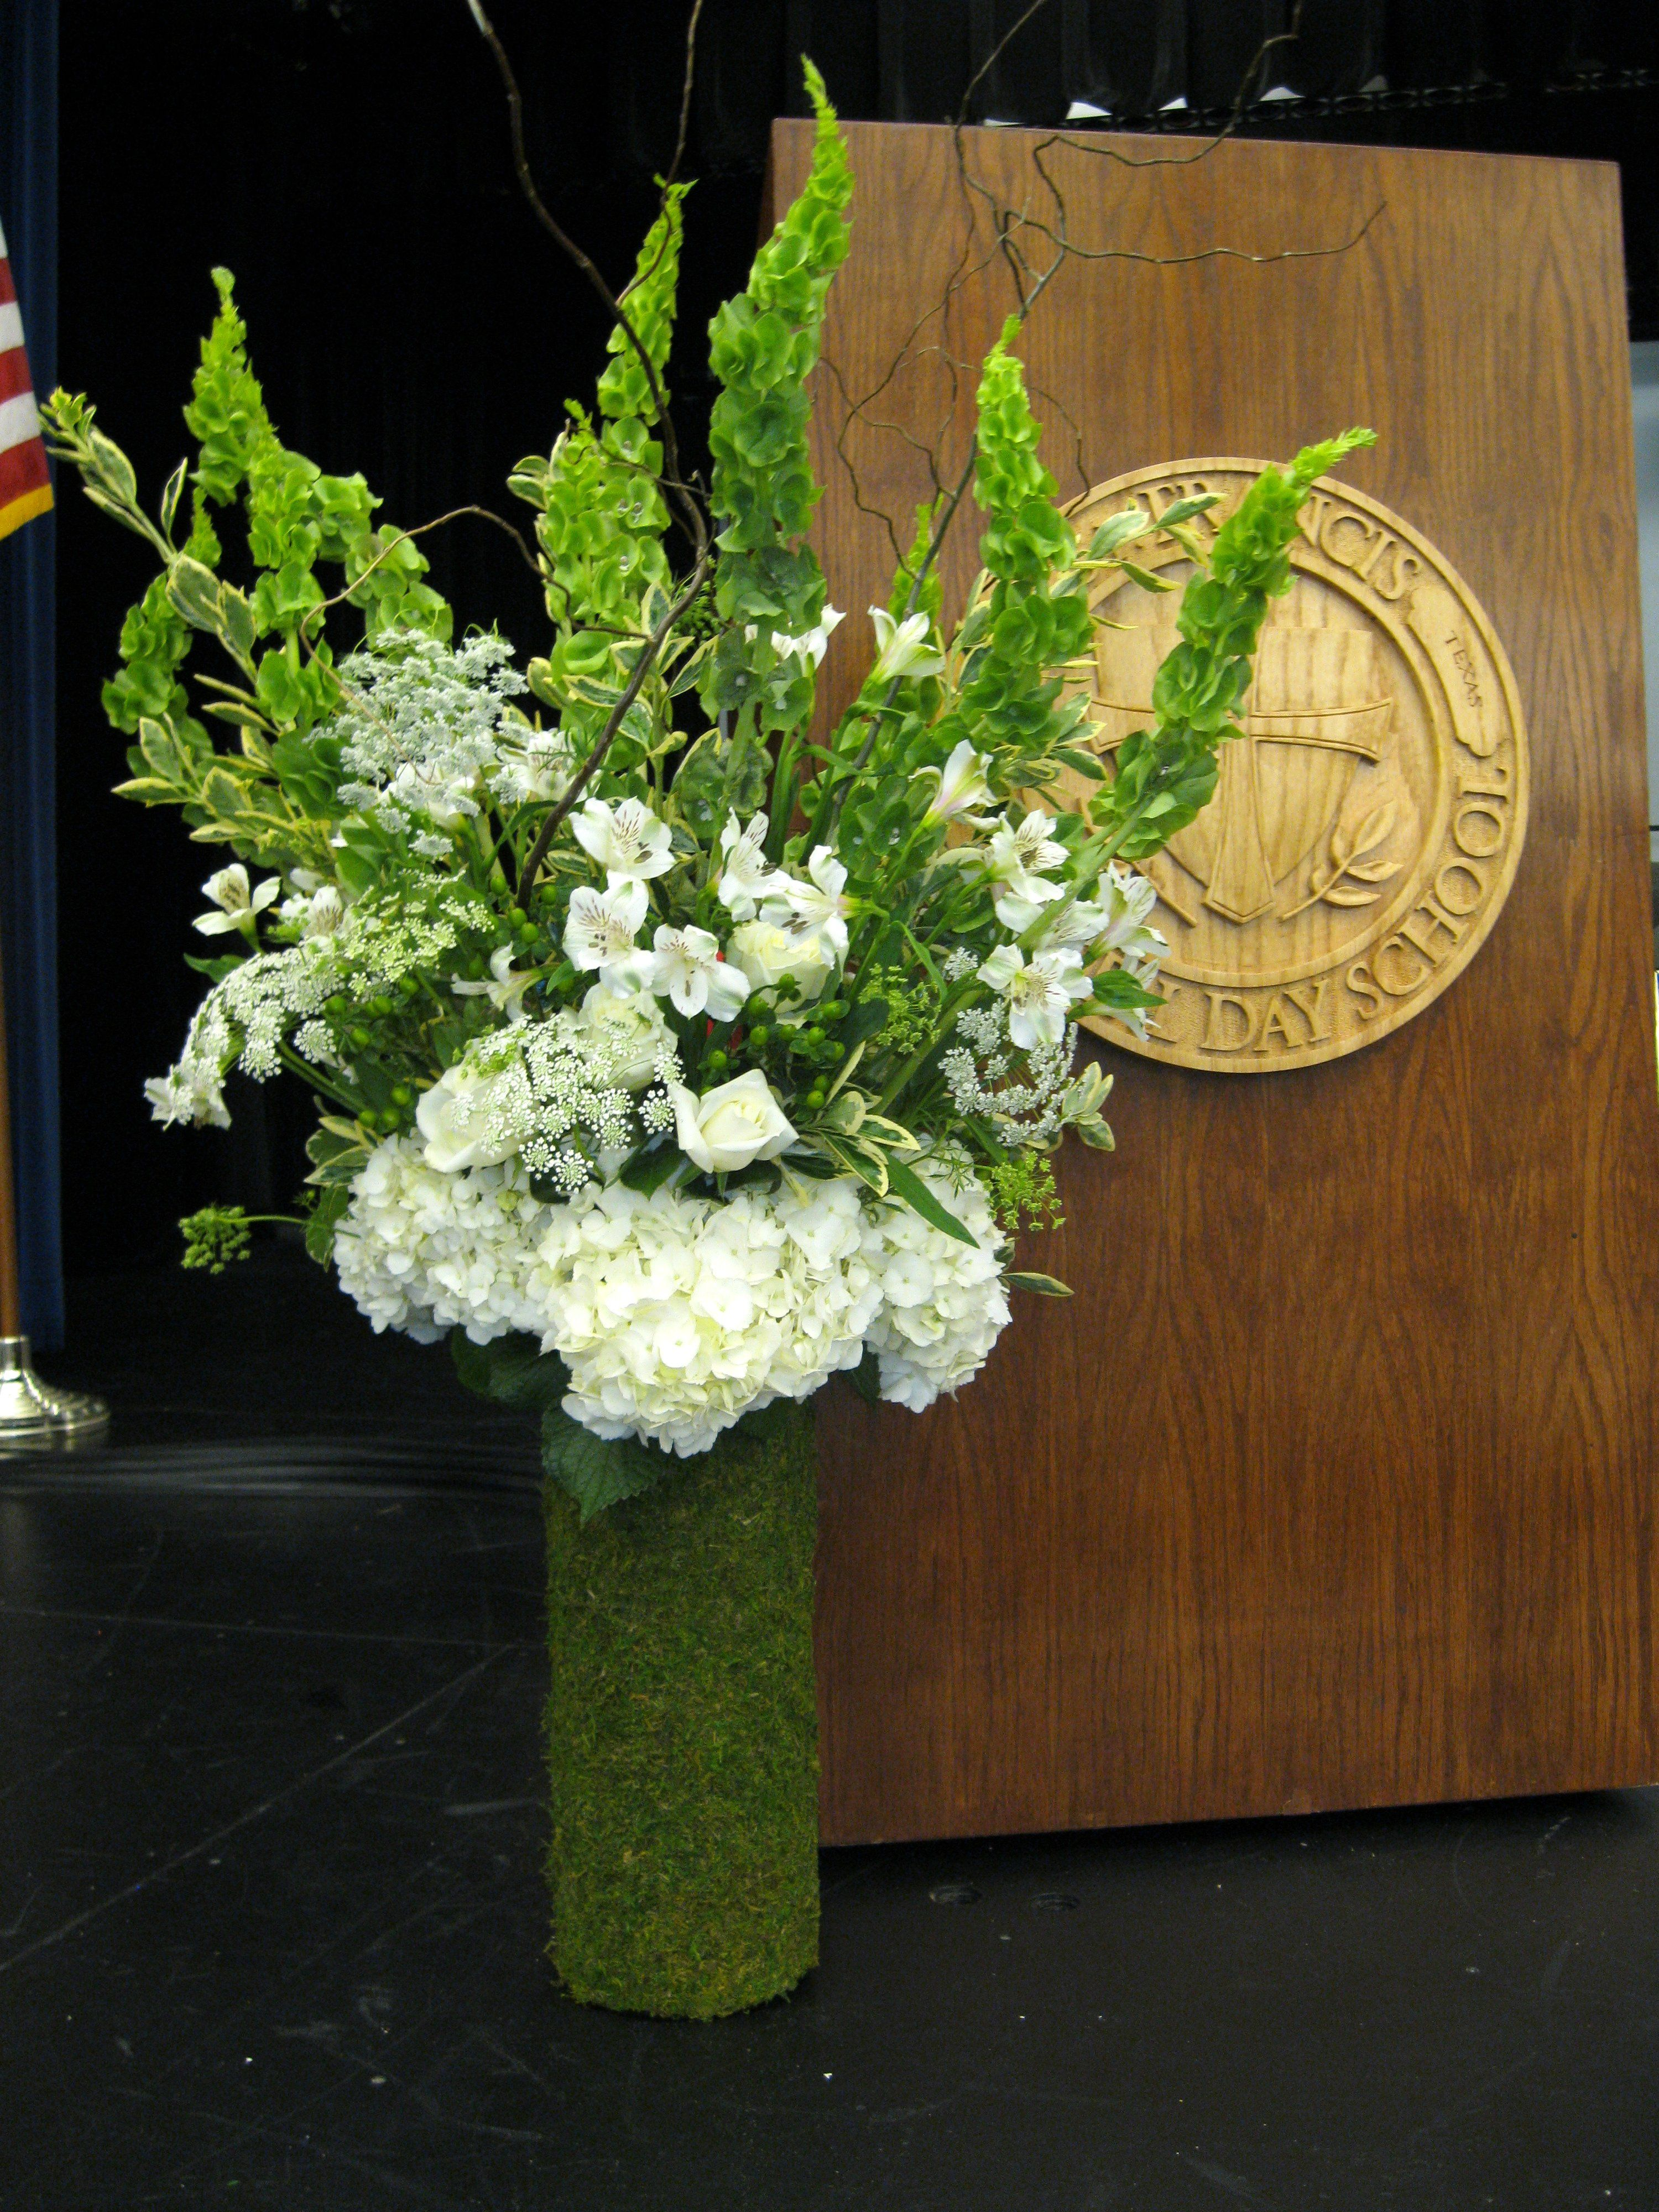 Commencement ceremony flowers for the podium in moss